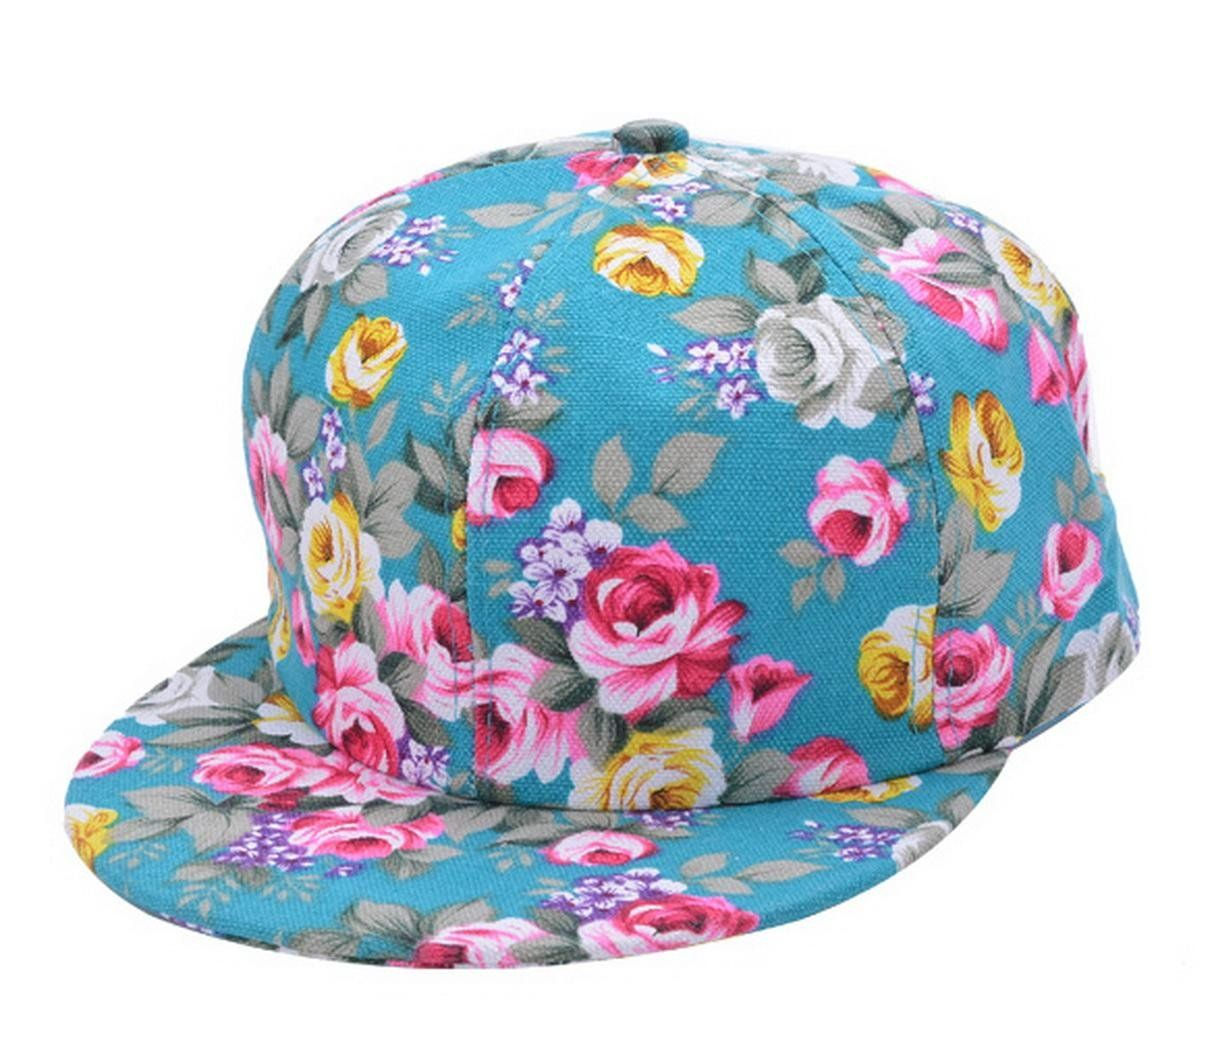 b33d58d9b39 New Summer Lady Floral Flower Baseball Cap Snapback Hip-hop Supreme Sun  Flat Hat at Amazon Women s Clothing store